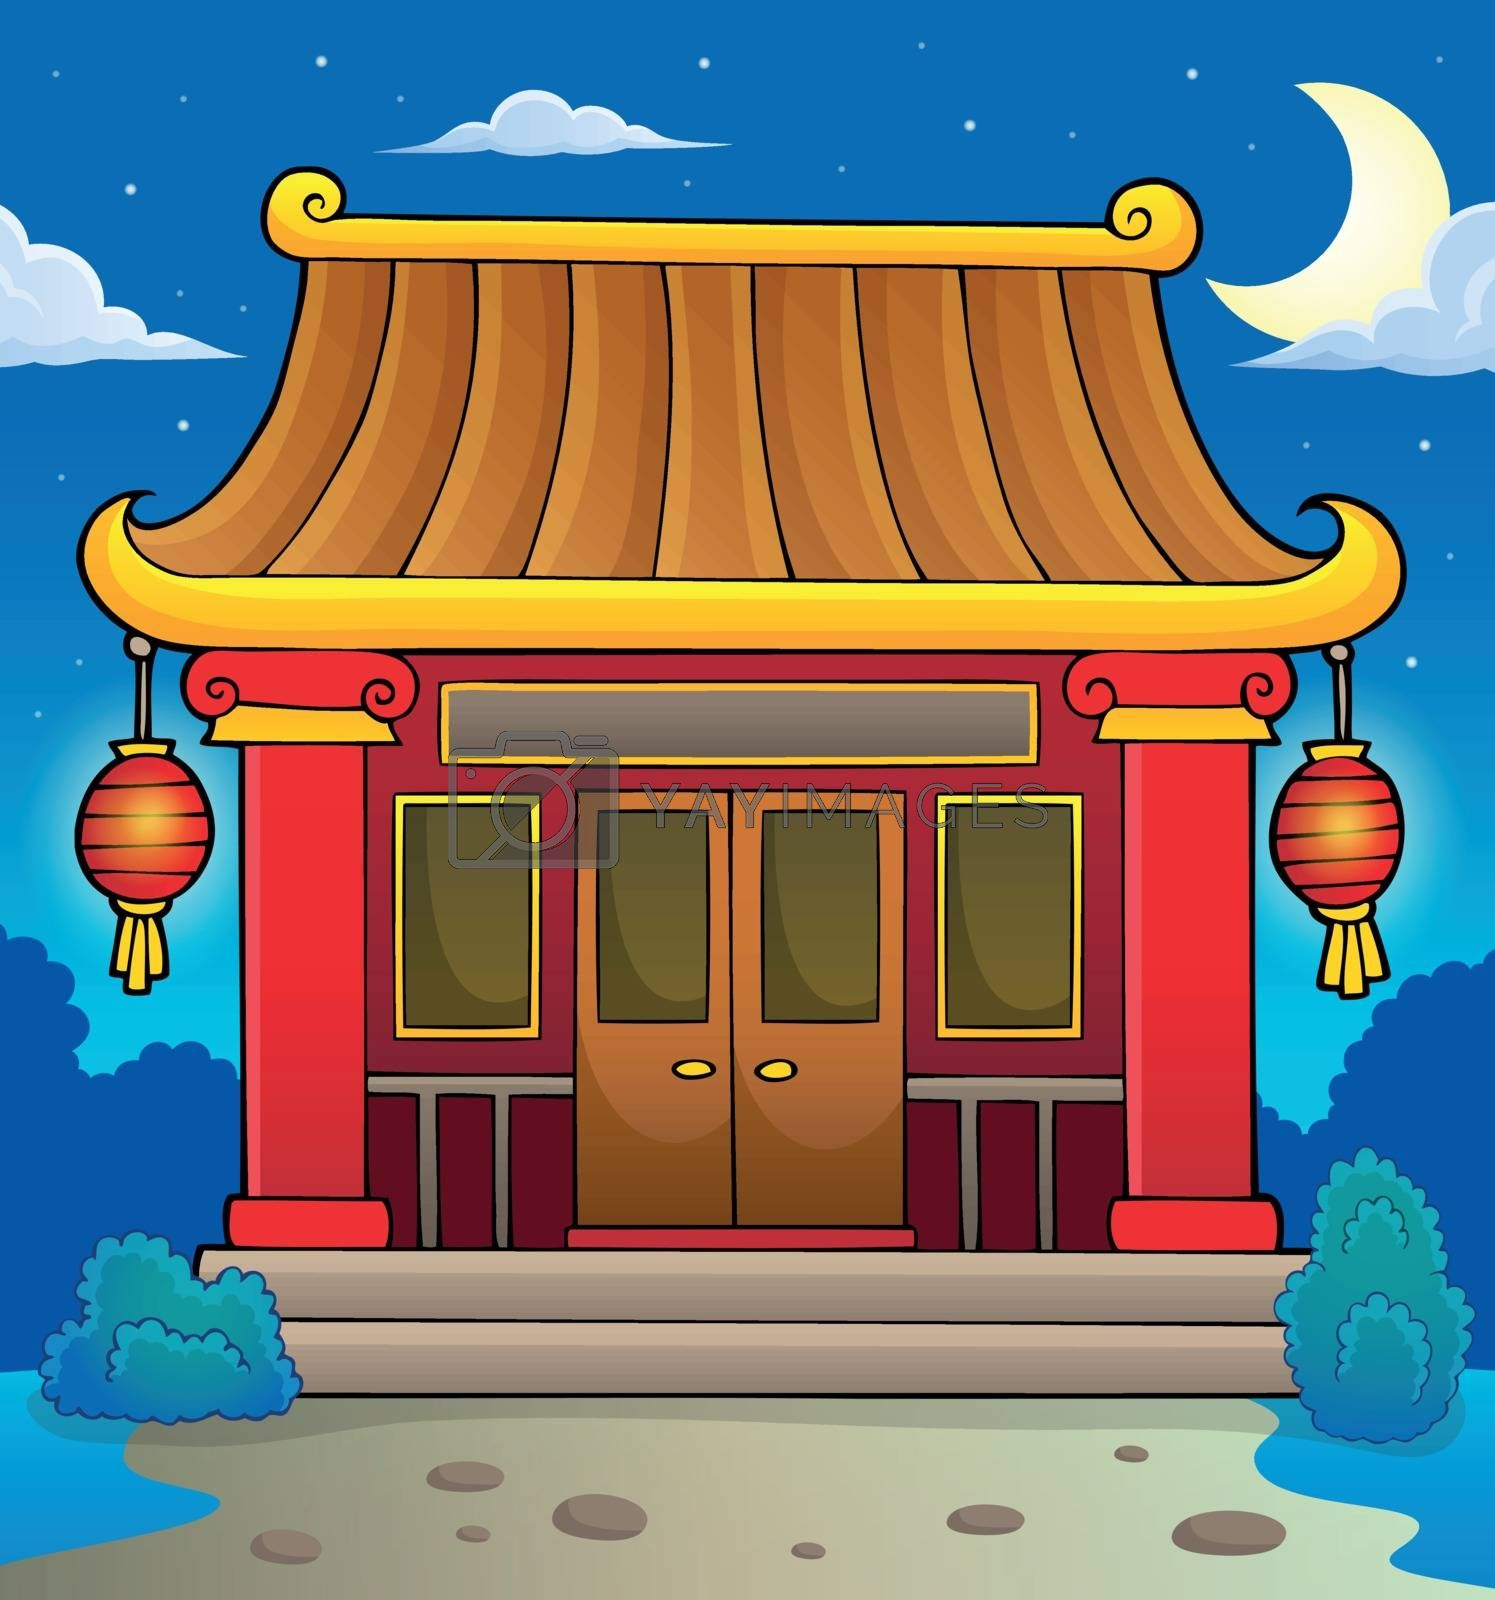 Chinese temple theme image 3 - eps10 vector illustration.